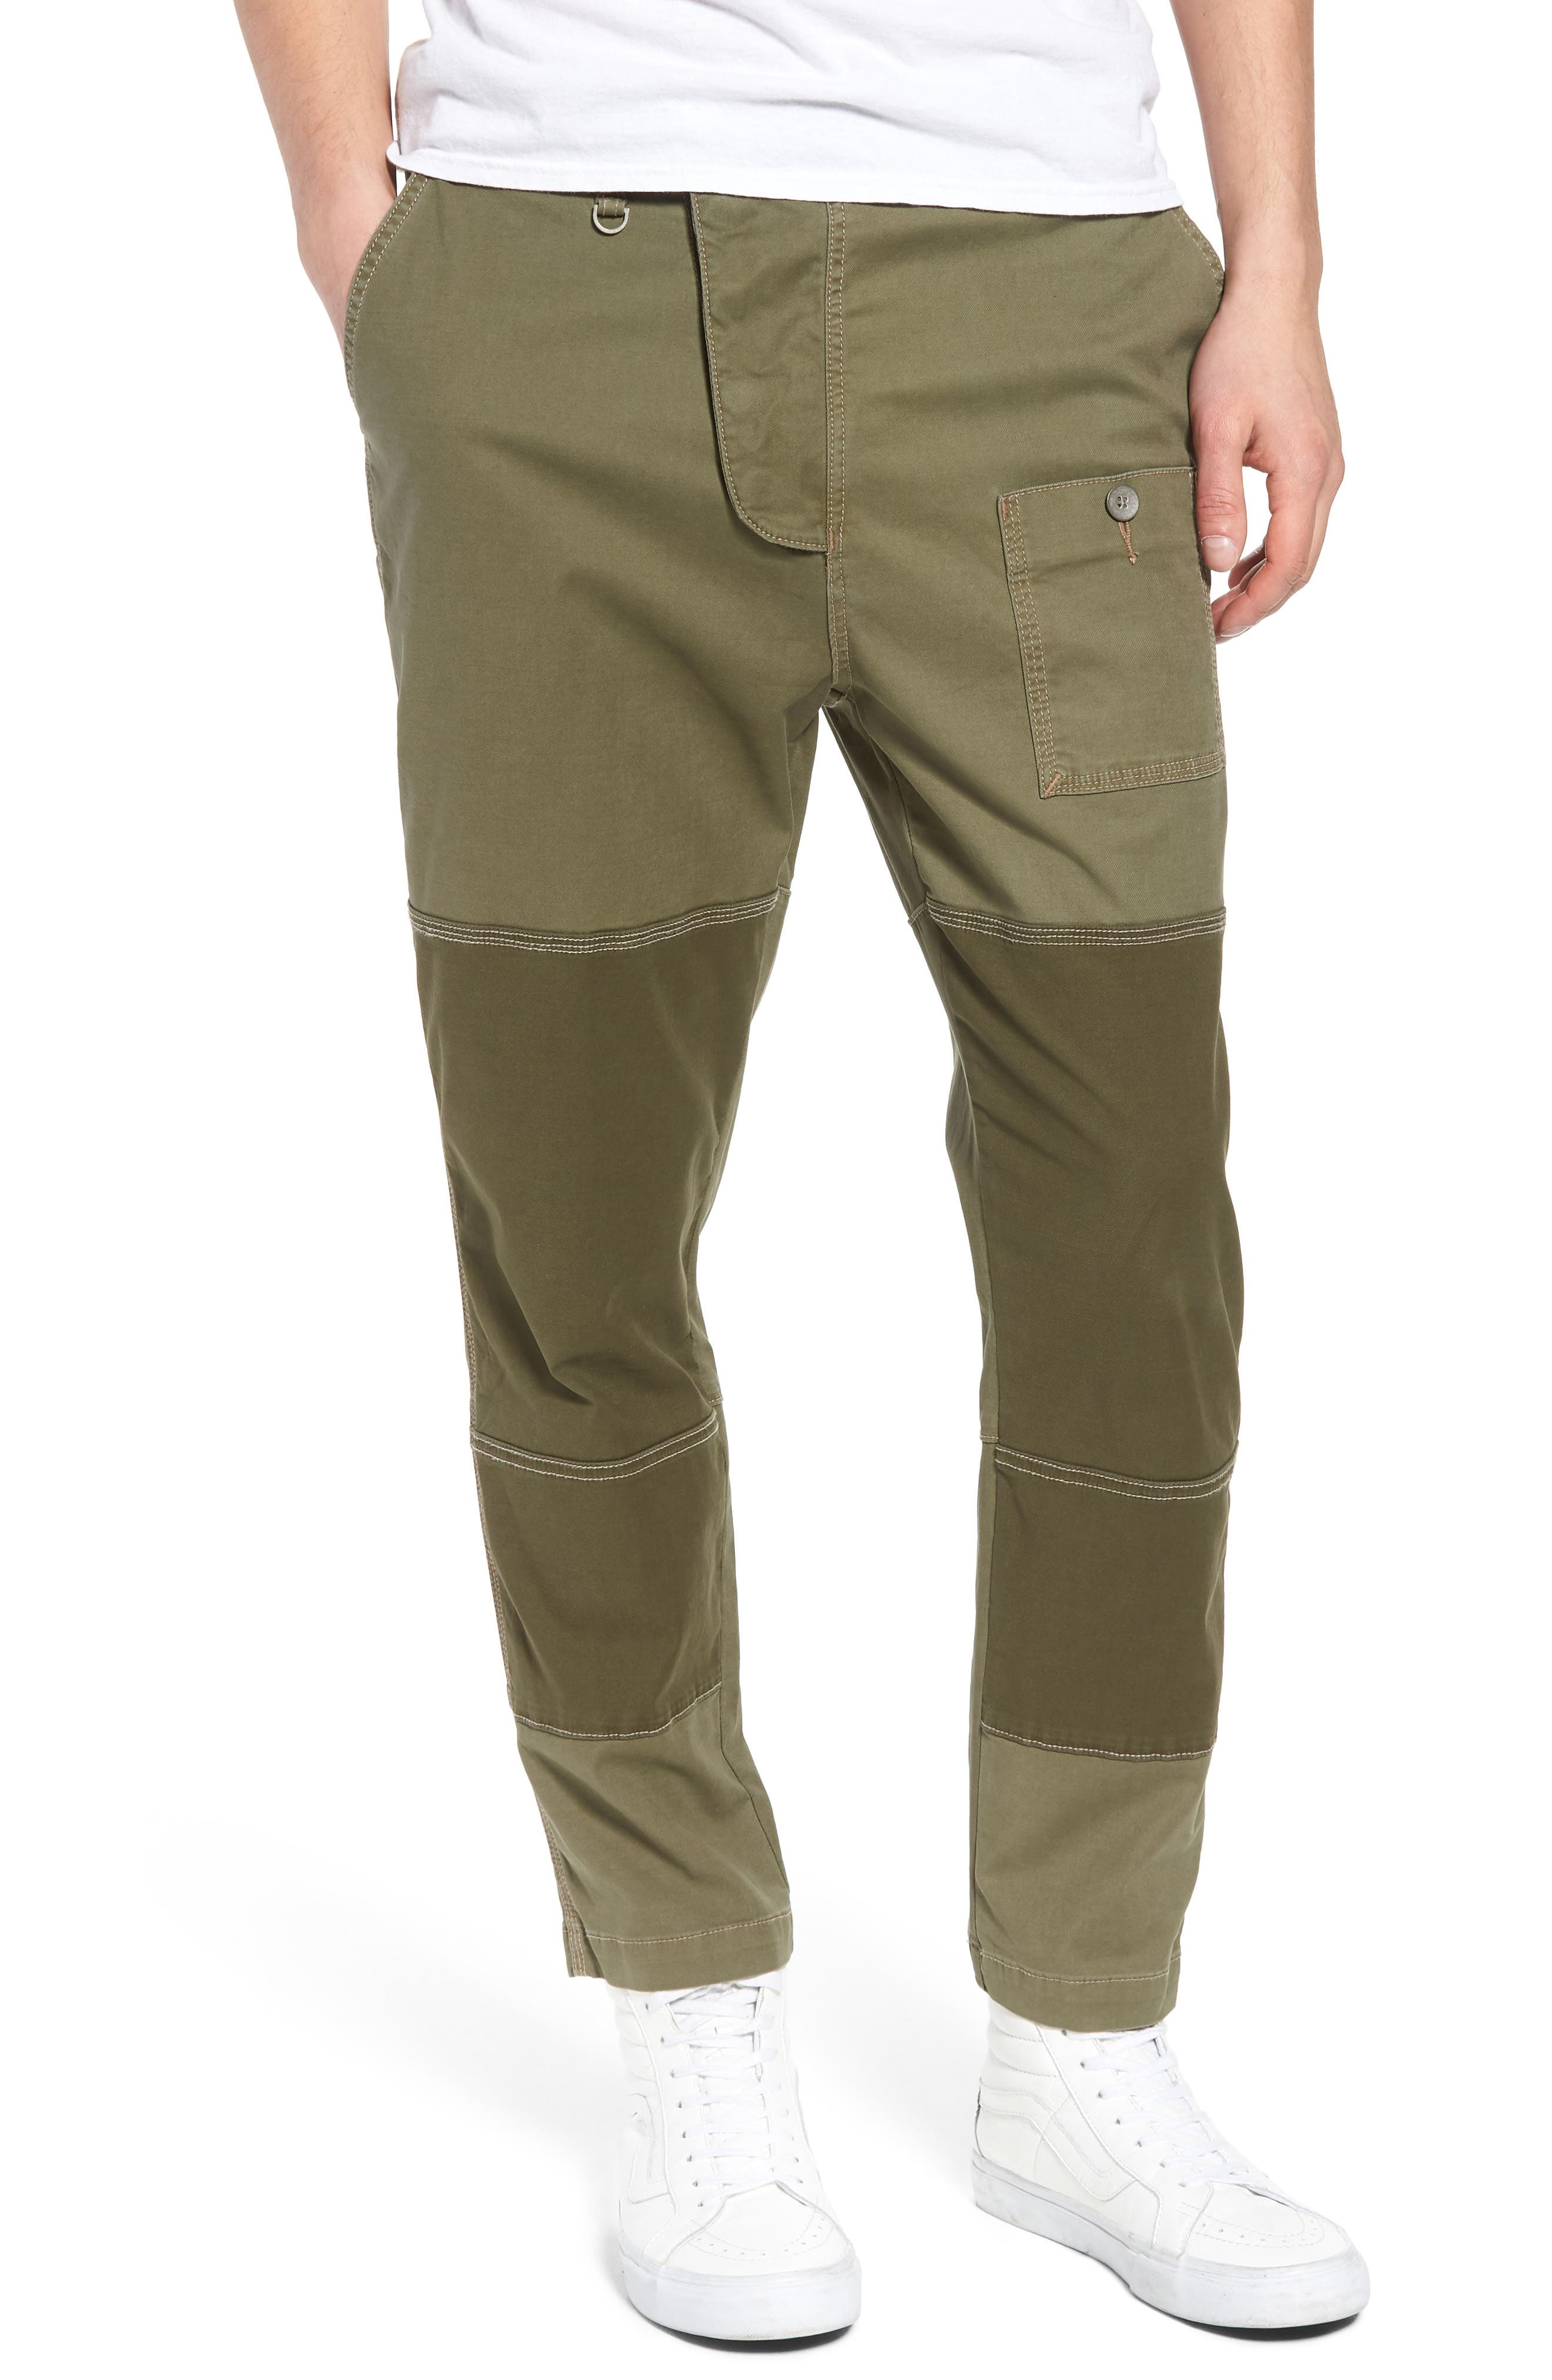 Slouchy Slim Fit Cargo Pants,                         Main,                         color, Army Green 1